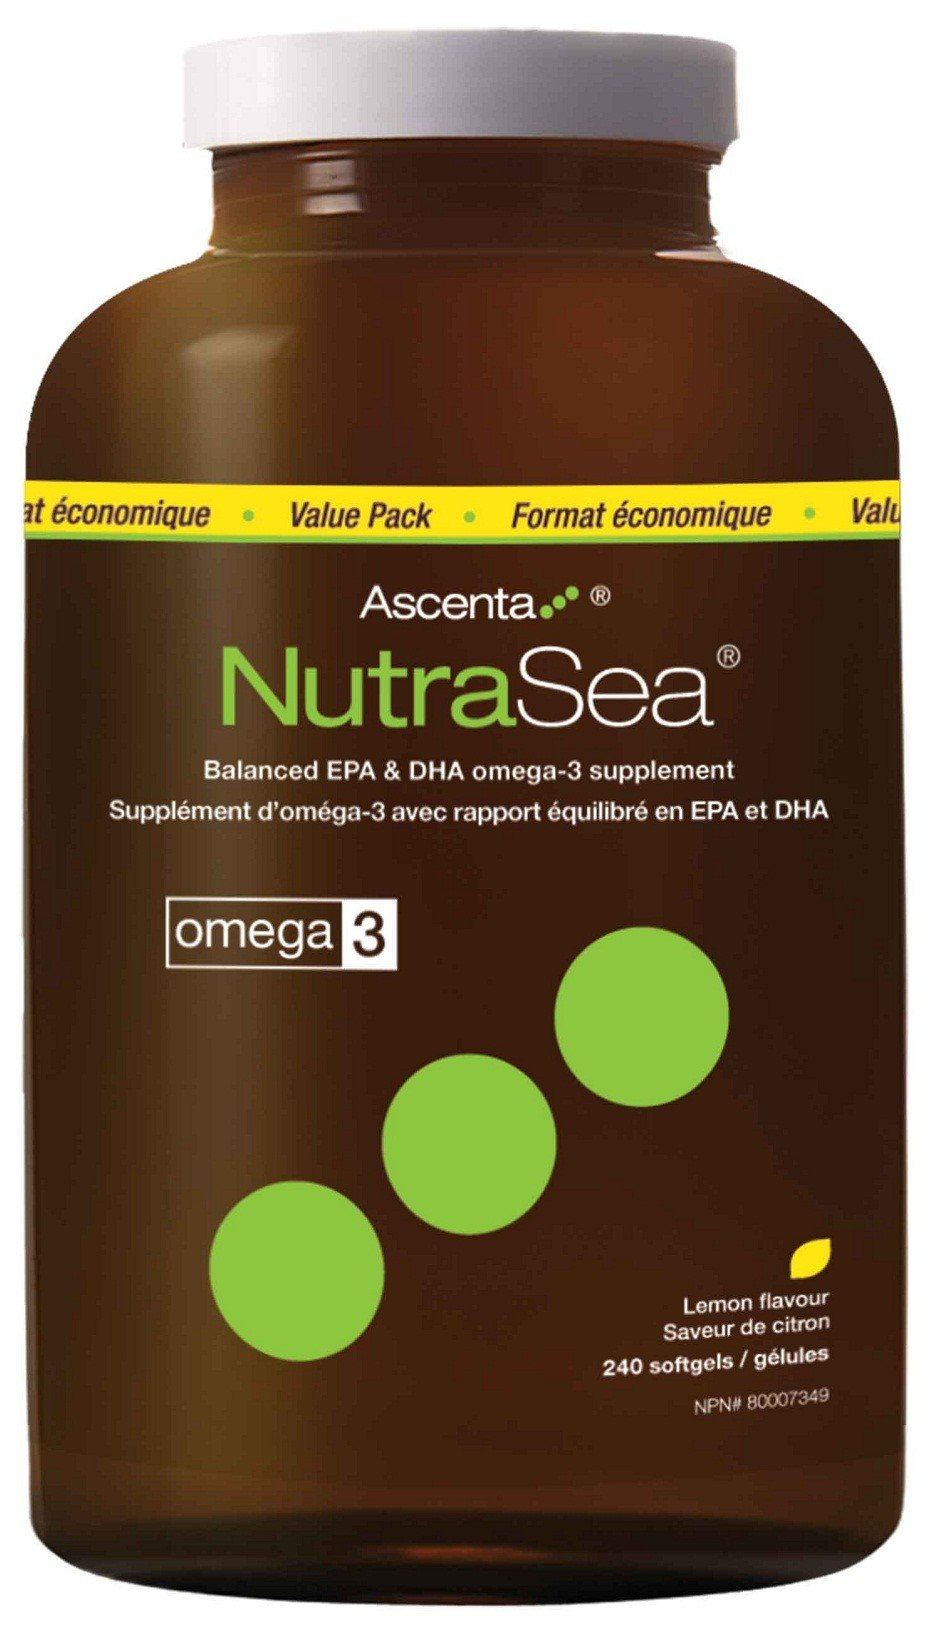 AscentaNutrasea Omega-3 Fish Oil Capsules Provide Essential Levels Of EPA And DHA